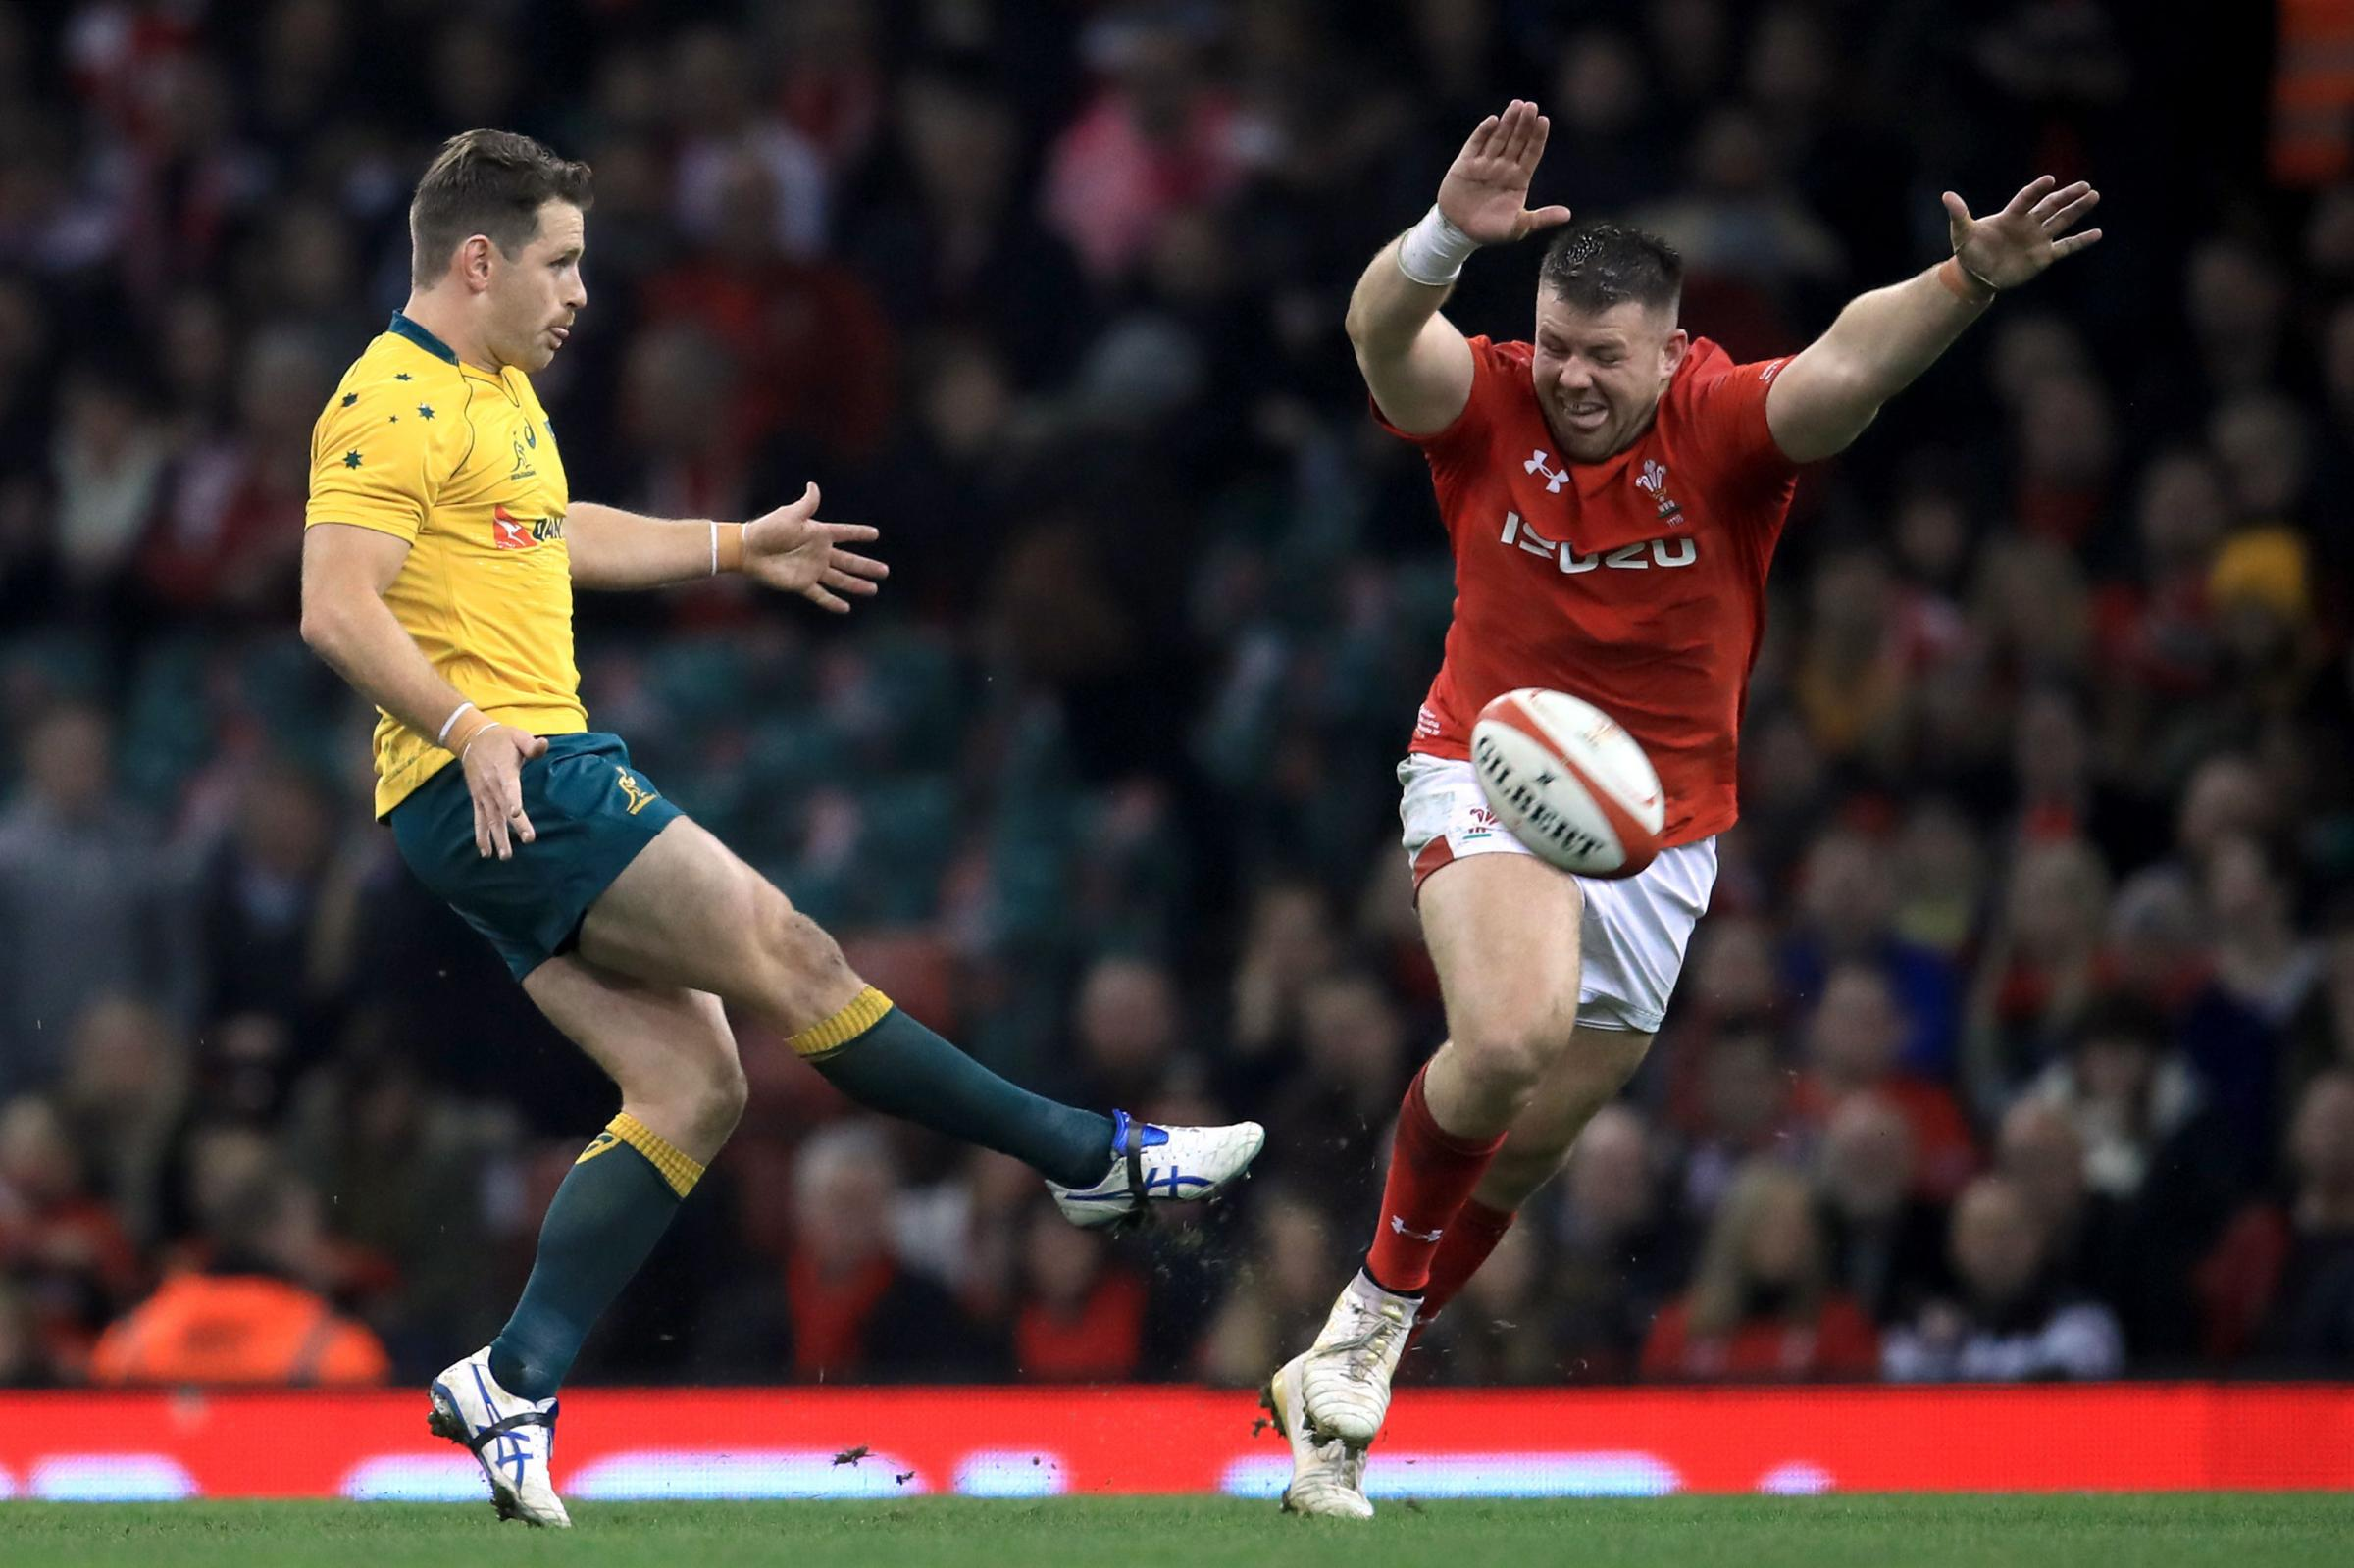 STARTING ROLE: Rob Evans will now start at loosehead for Wales against Argentina